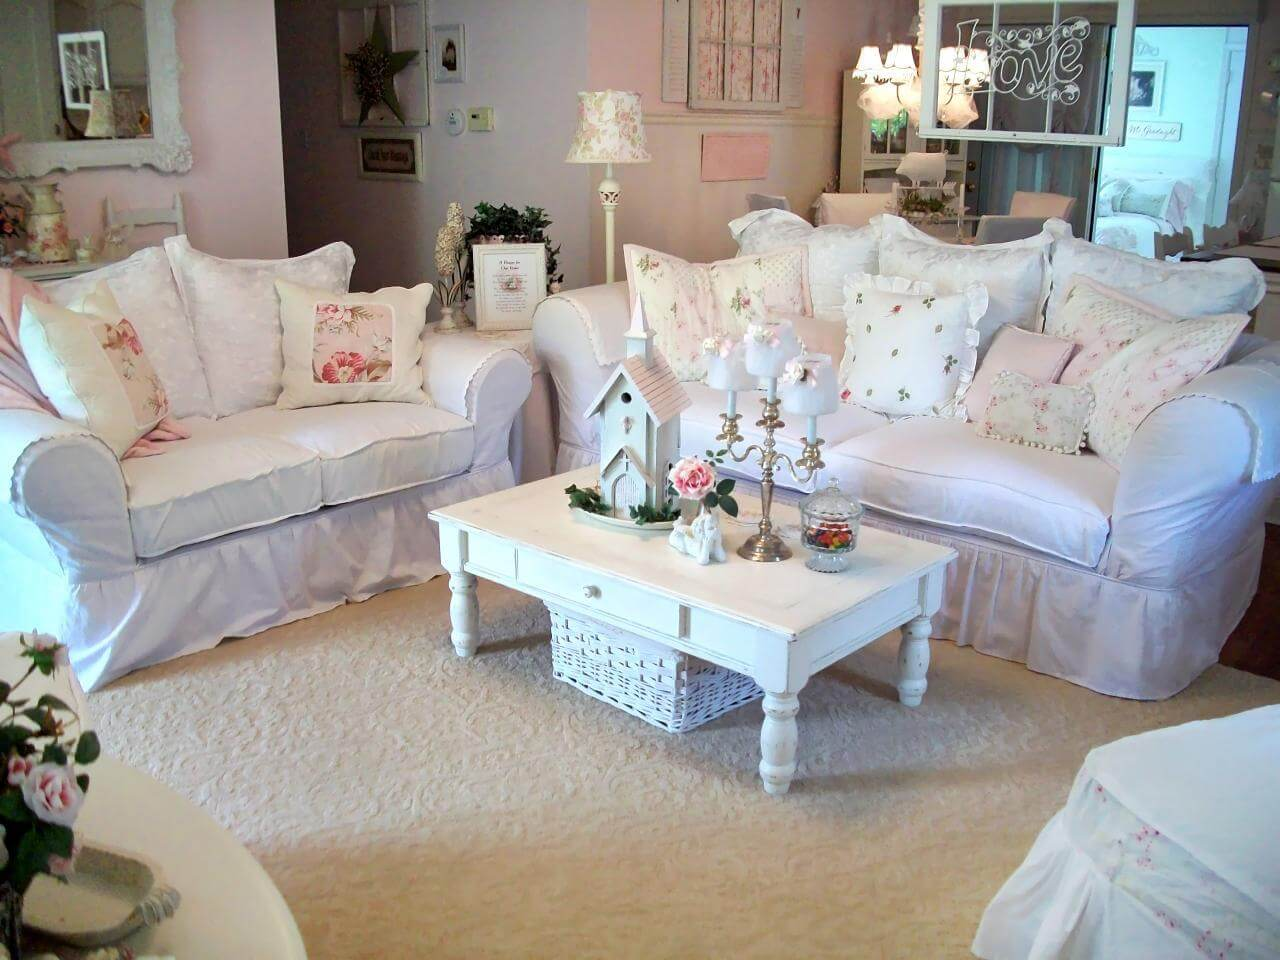 Couch Shabby Chic 32 Best Shabby Chic Living Room Decor Ideas And Designs For 2019